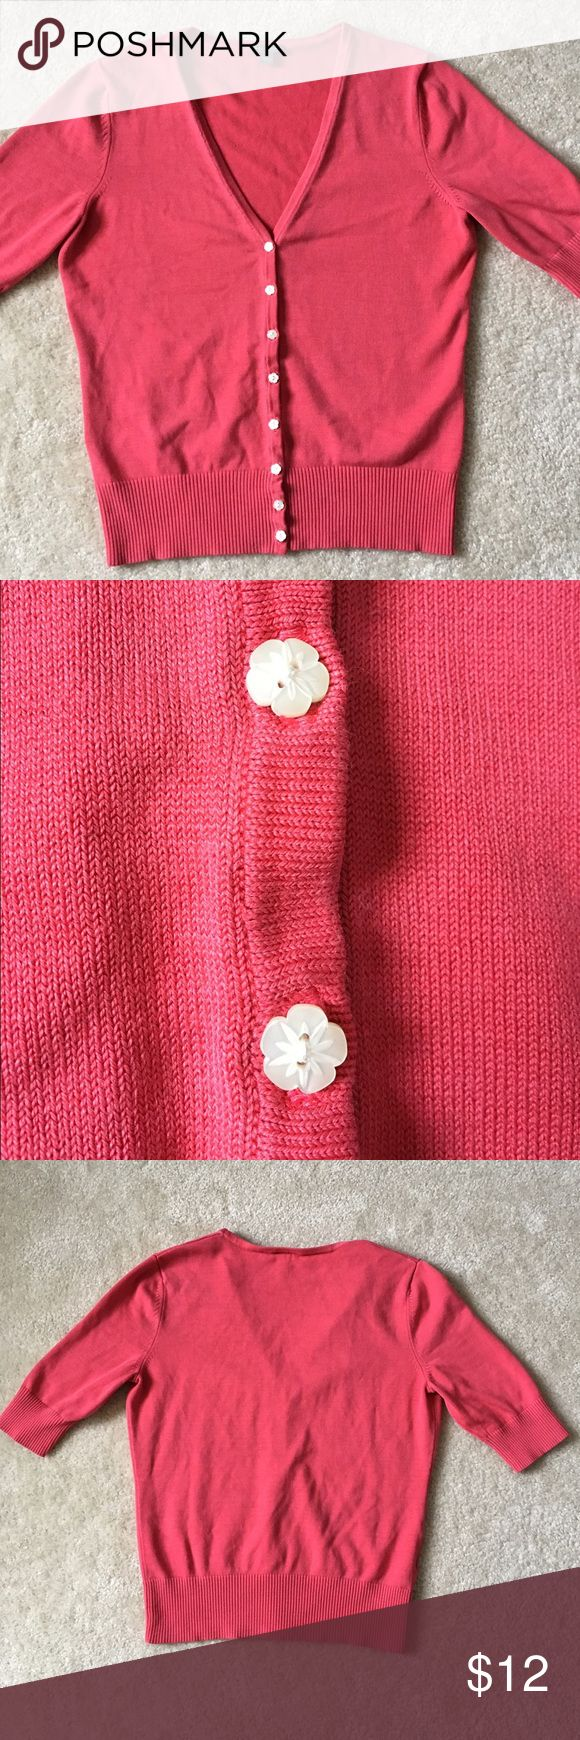 Ann Taylor Pink Coral 3/4 Sleeve Cardigan Used M Medium Ann Taylor 3/4 Sleeve pink/coral cardigan with cream colored flower buttons. Ann Taylor Sweaters Cardigans